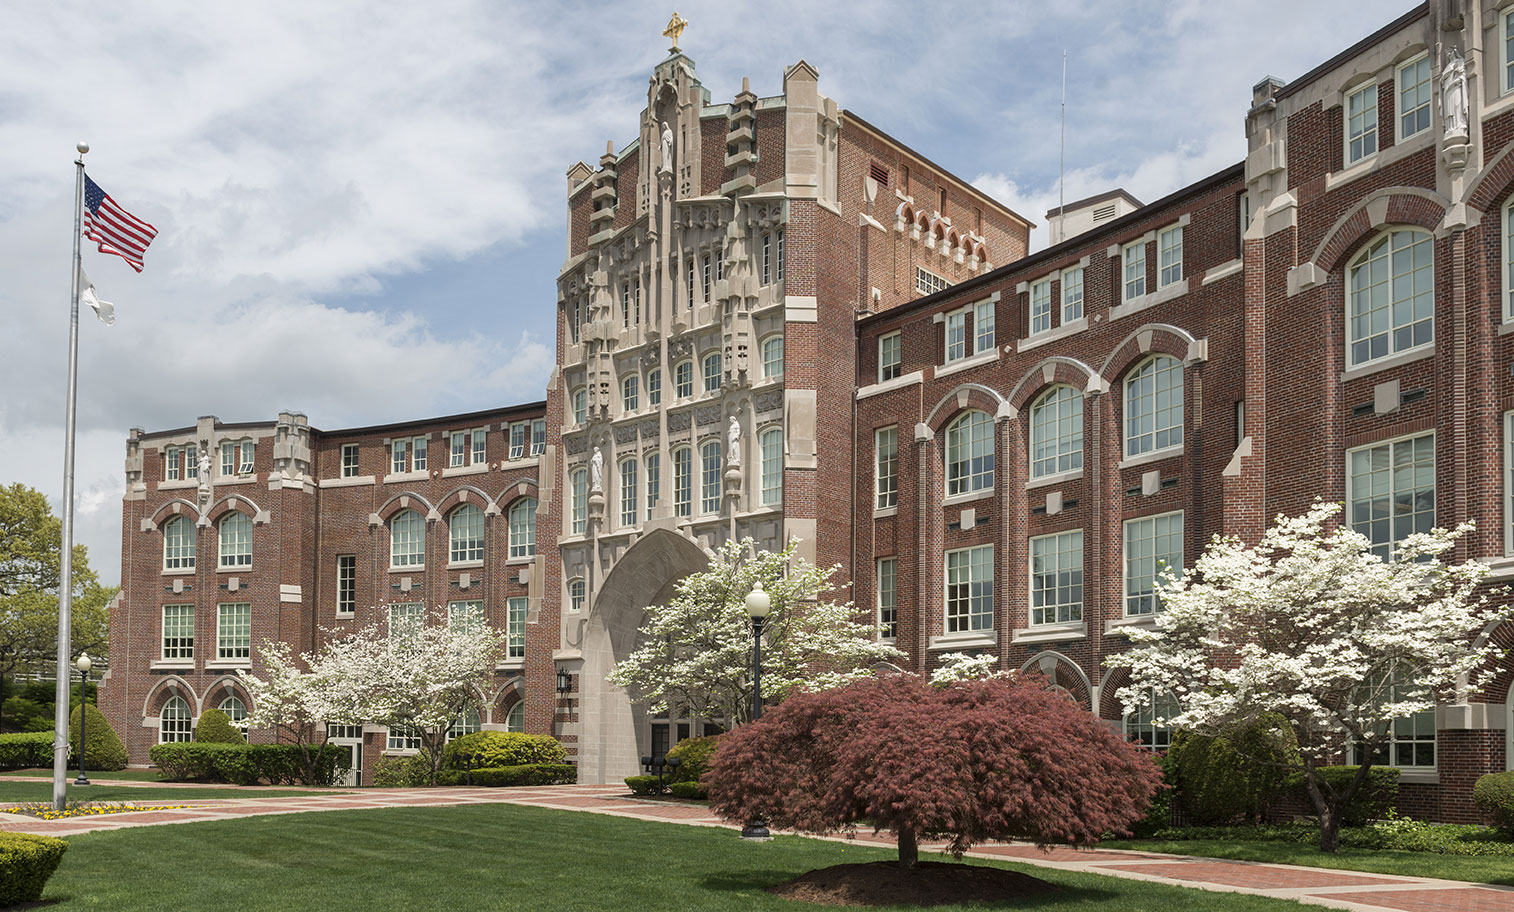 Photo of the exterior of Harkins Hall, main administrative building at Providence College